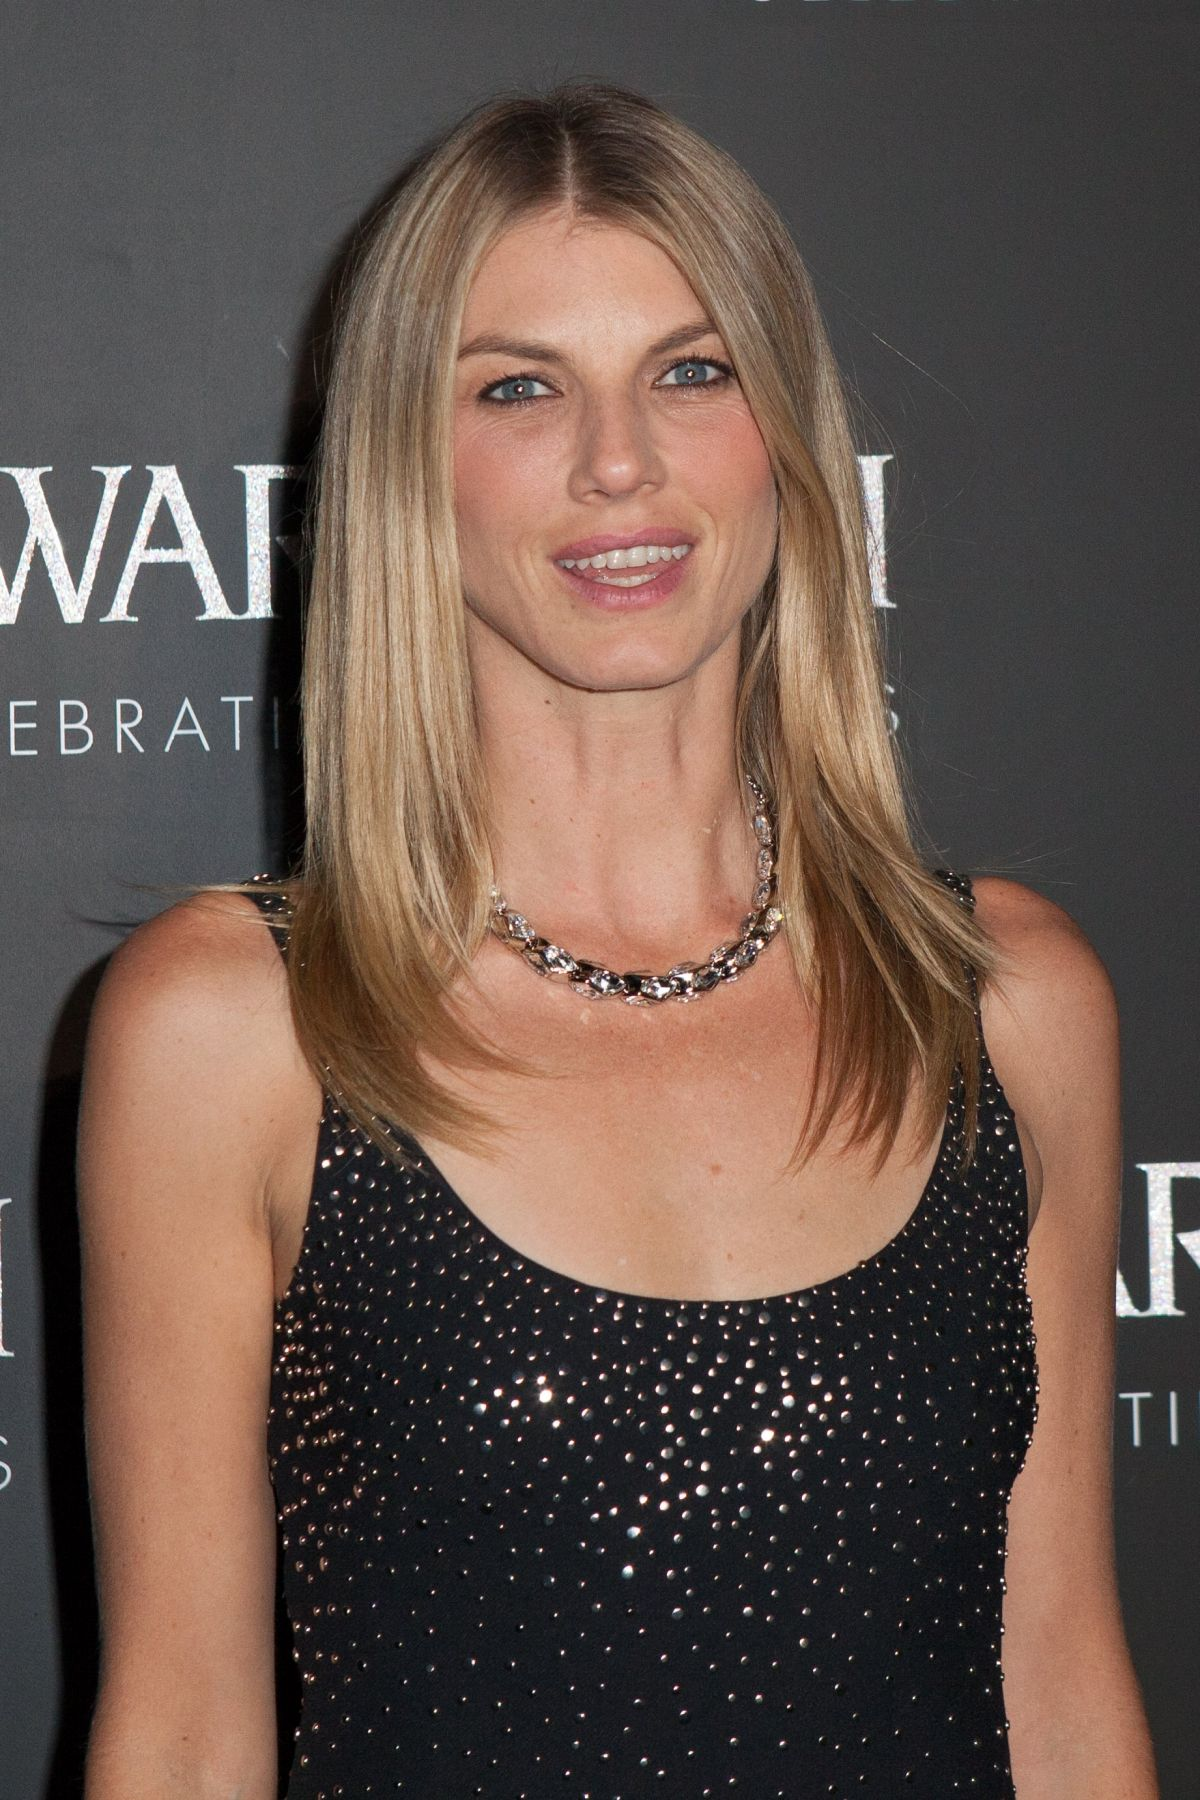 Pictures Angela Lindvall nudes (88 photo), Tits, Bikini, Twitter, cameltoe 2019